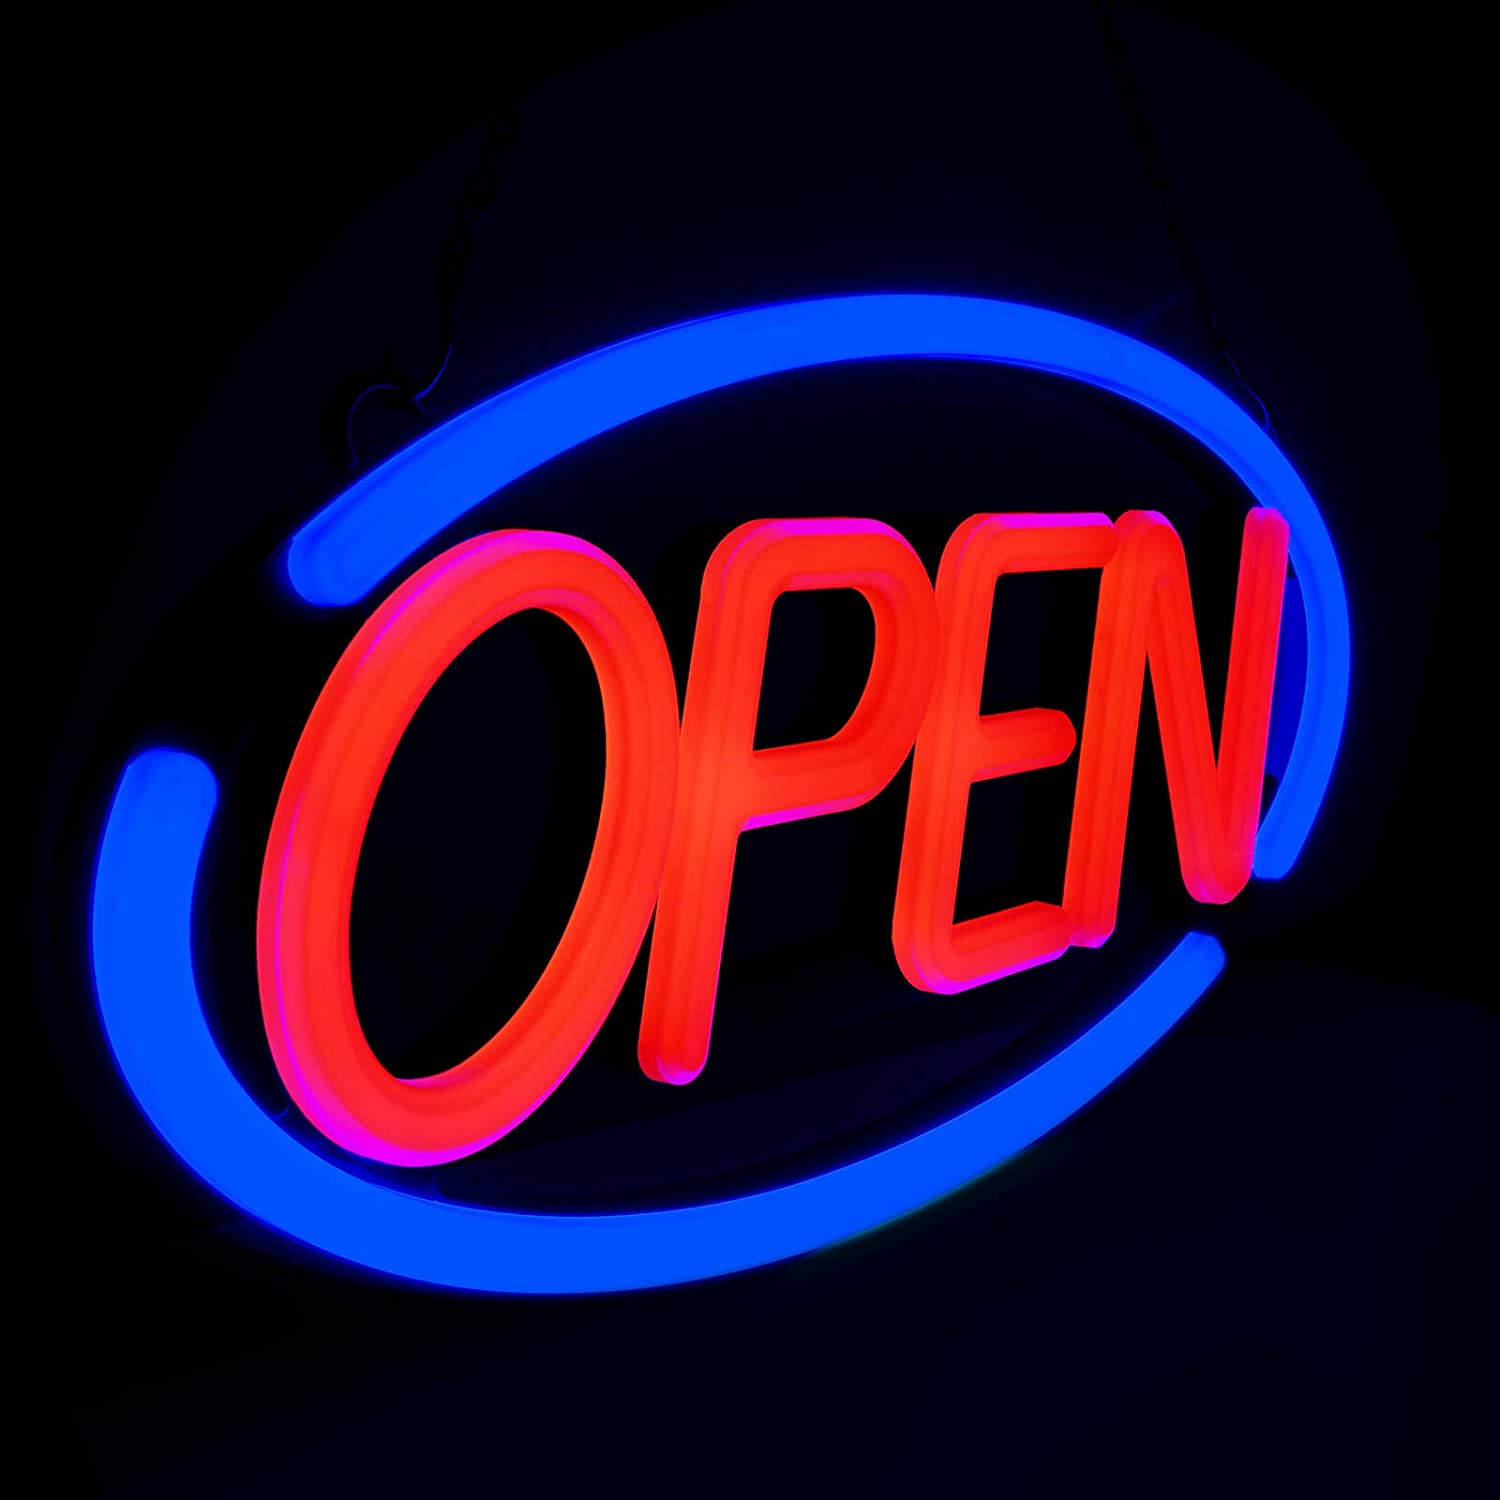 LED Business SEAL limited product 1 year warranty Neon Open Sign - 24 Display 12 Bright Store x